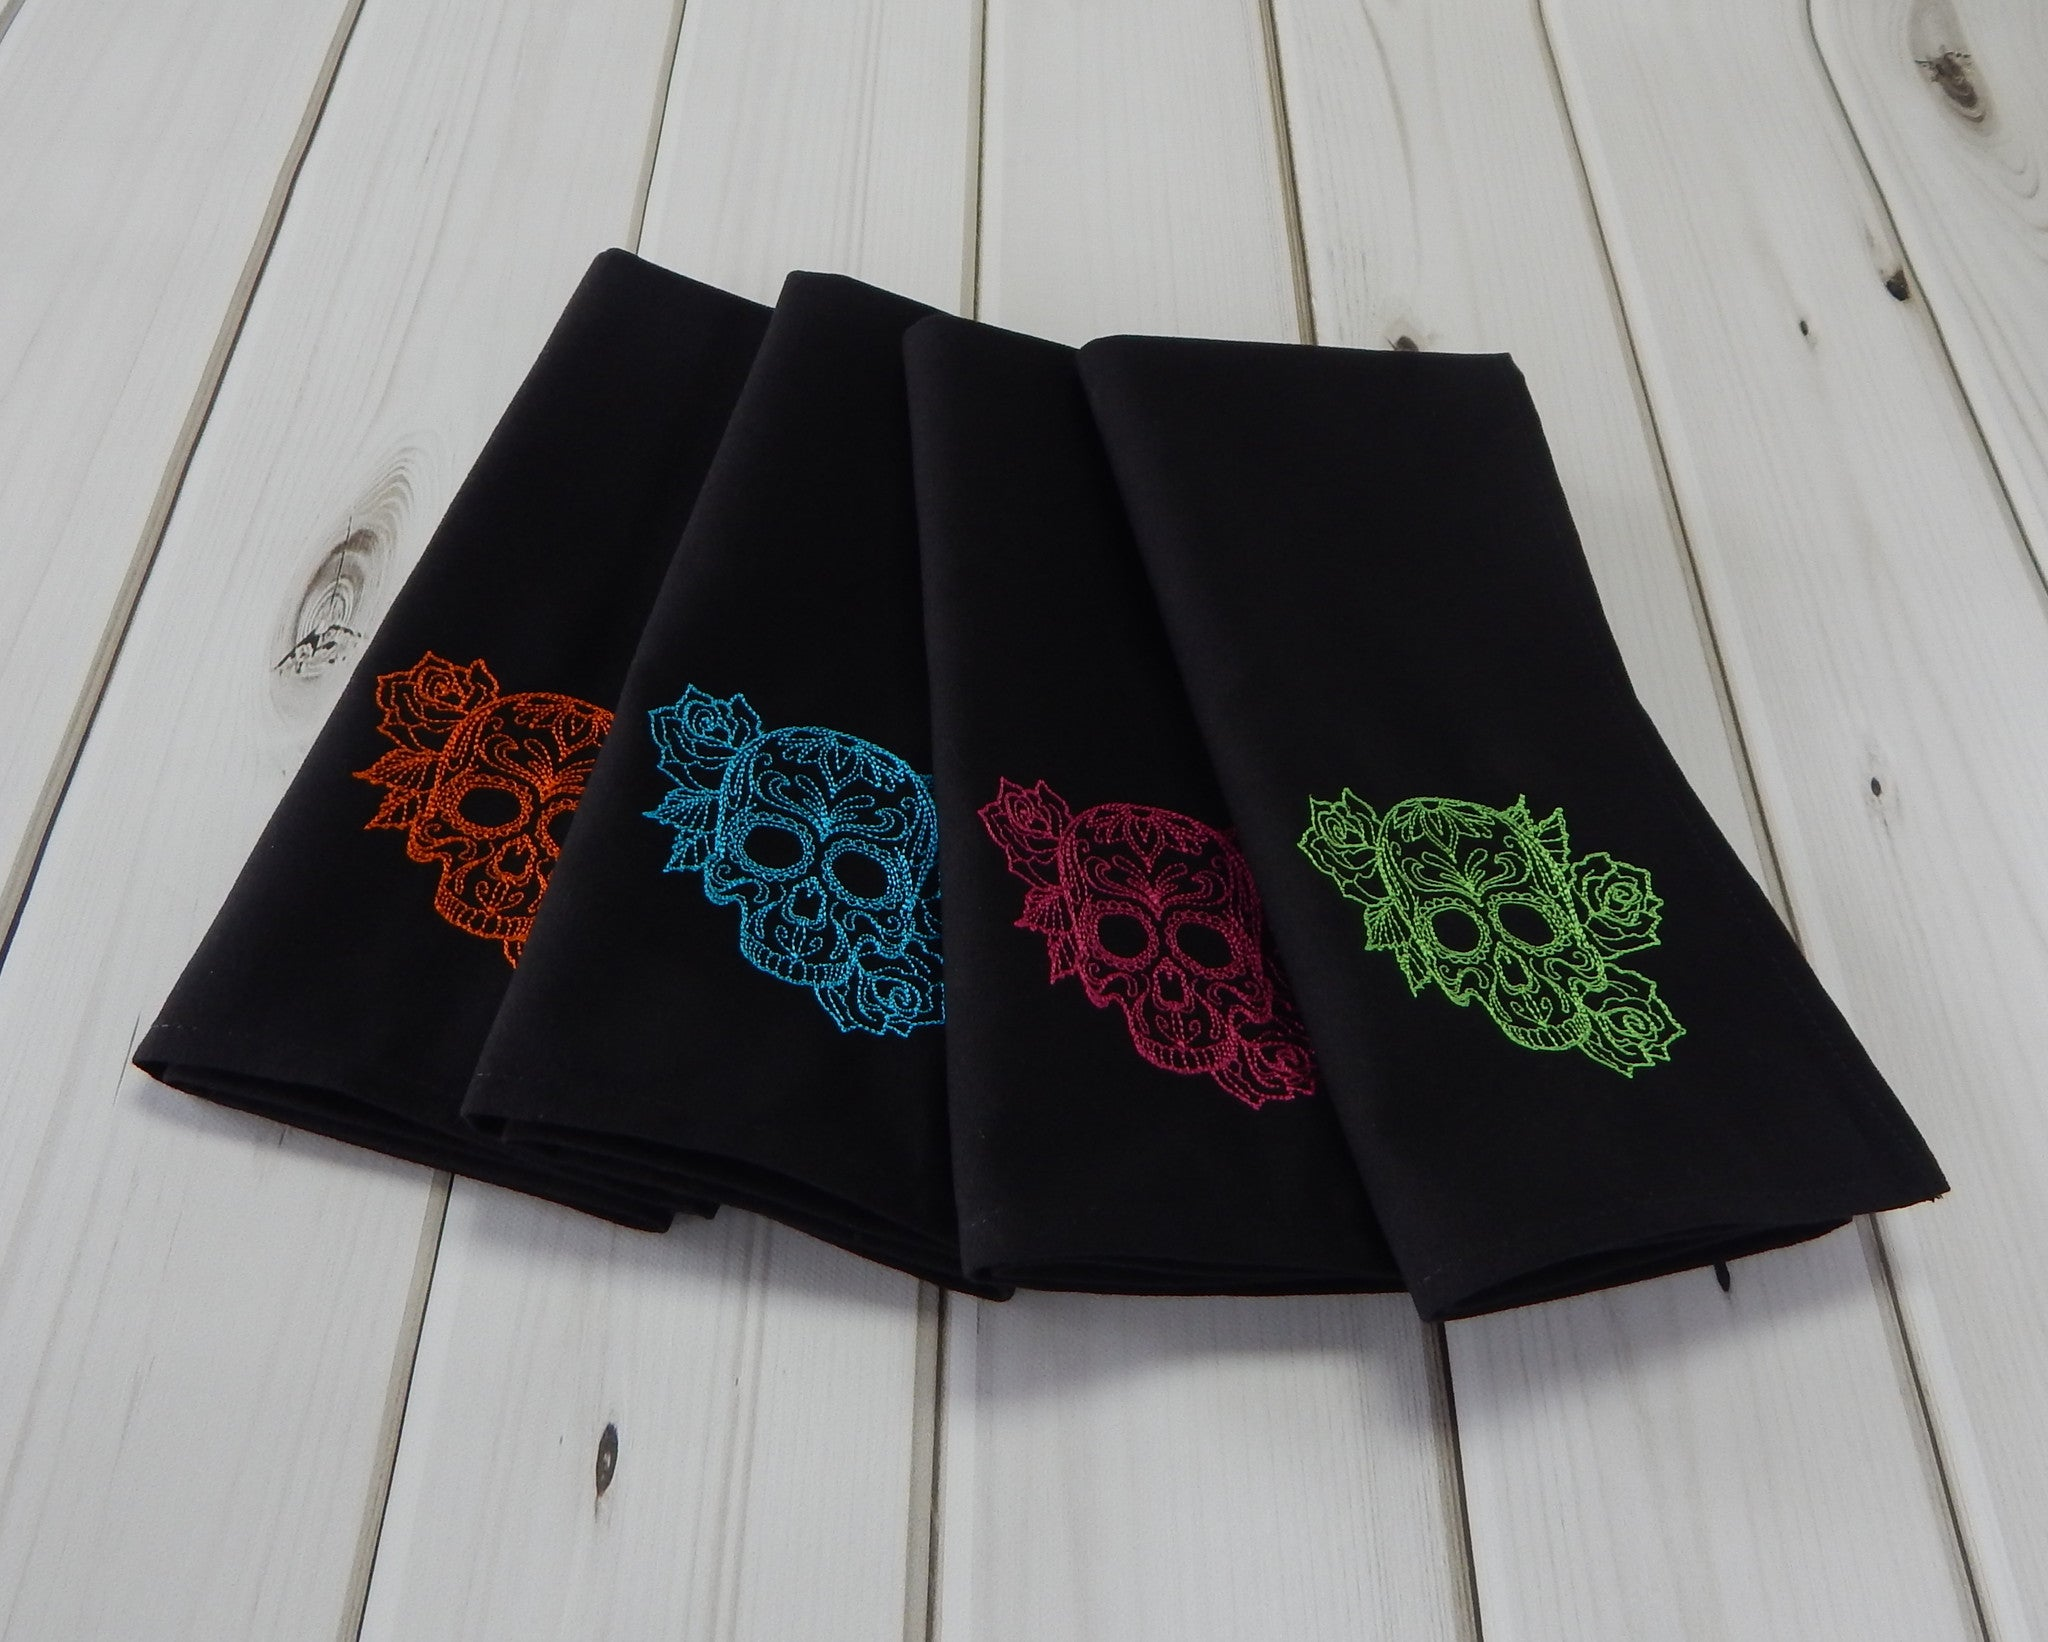 SUGAR SKULLS BLACK - French Press Linens